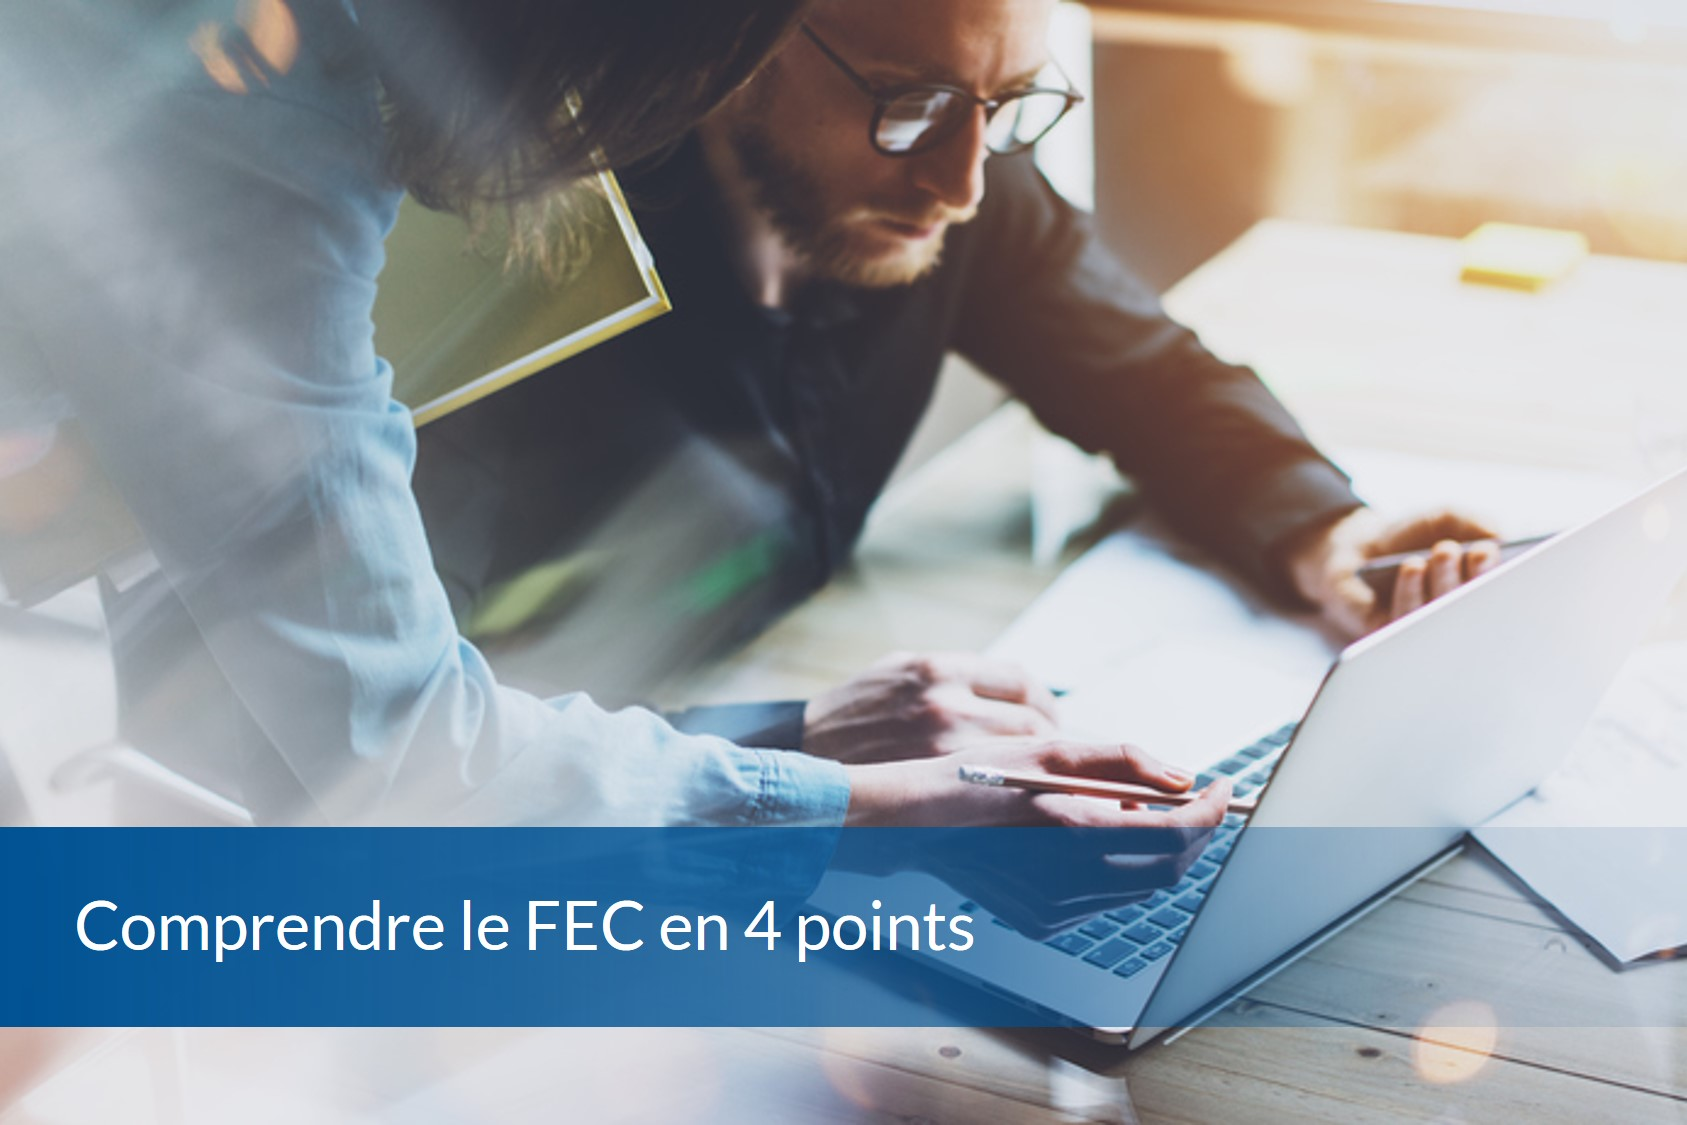 BP016 - Comprendre le FEC en 4 points